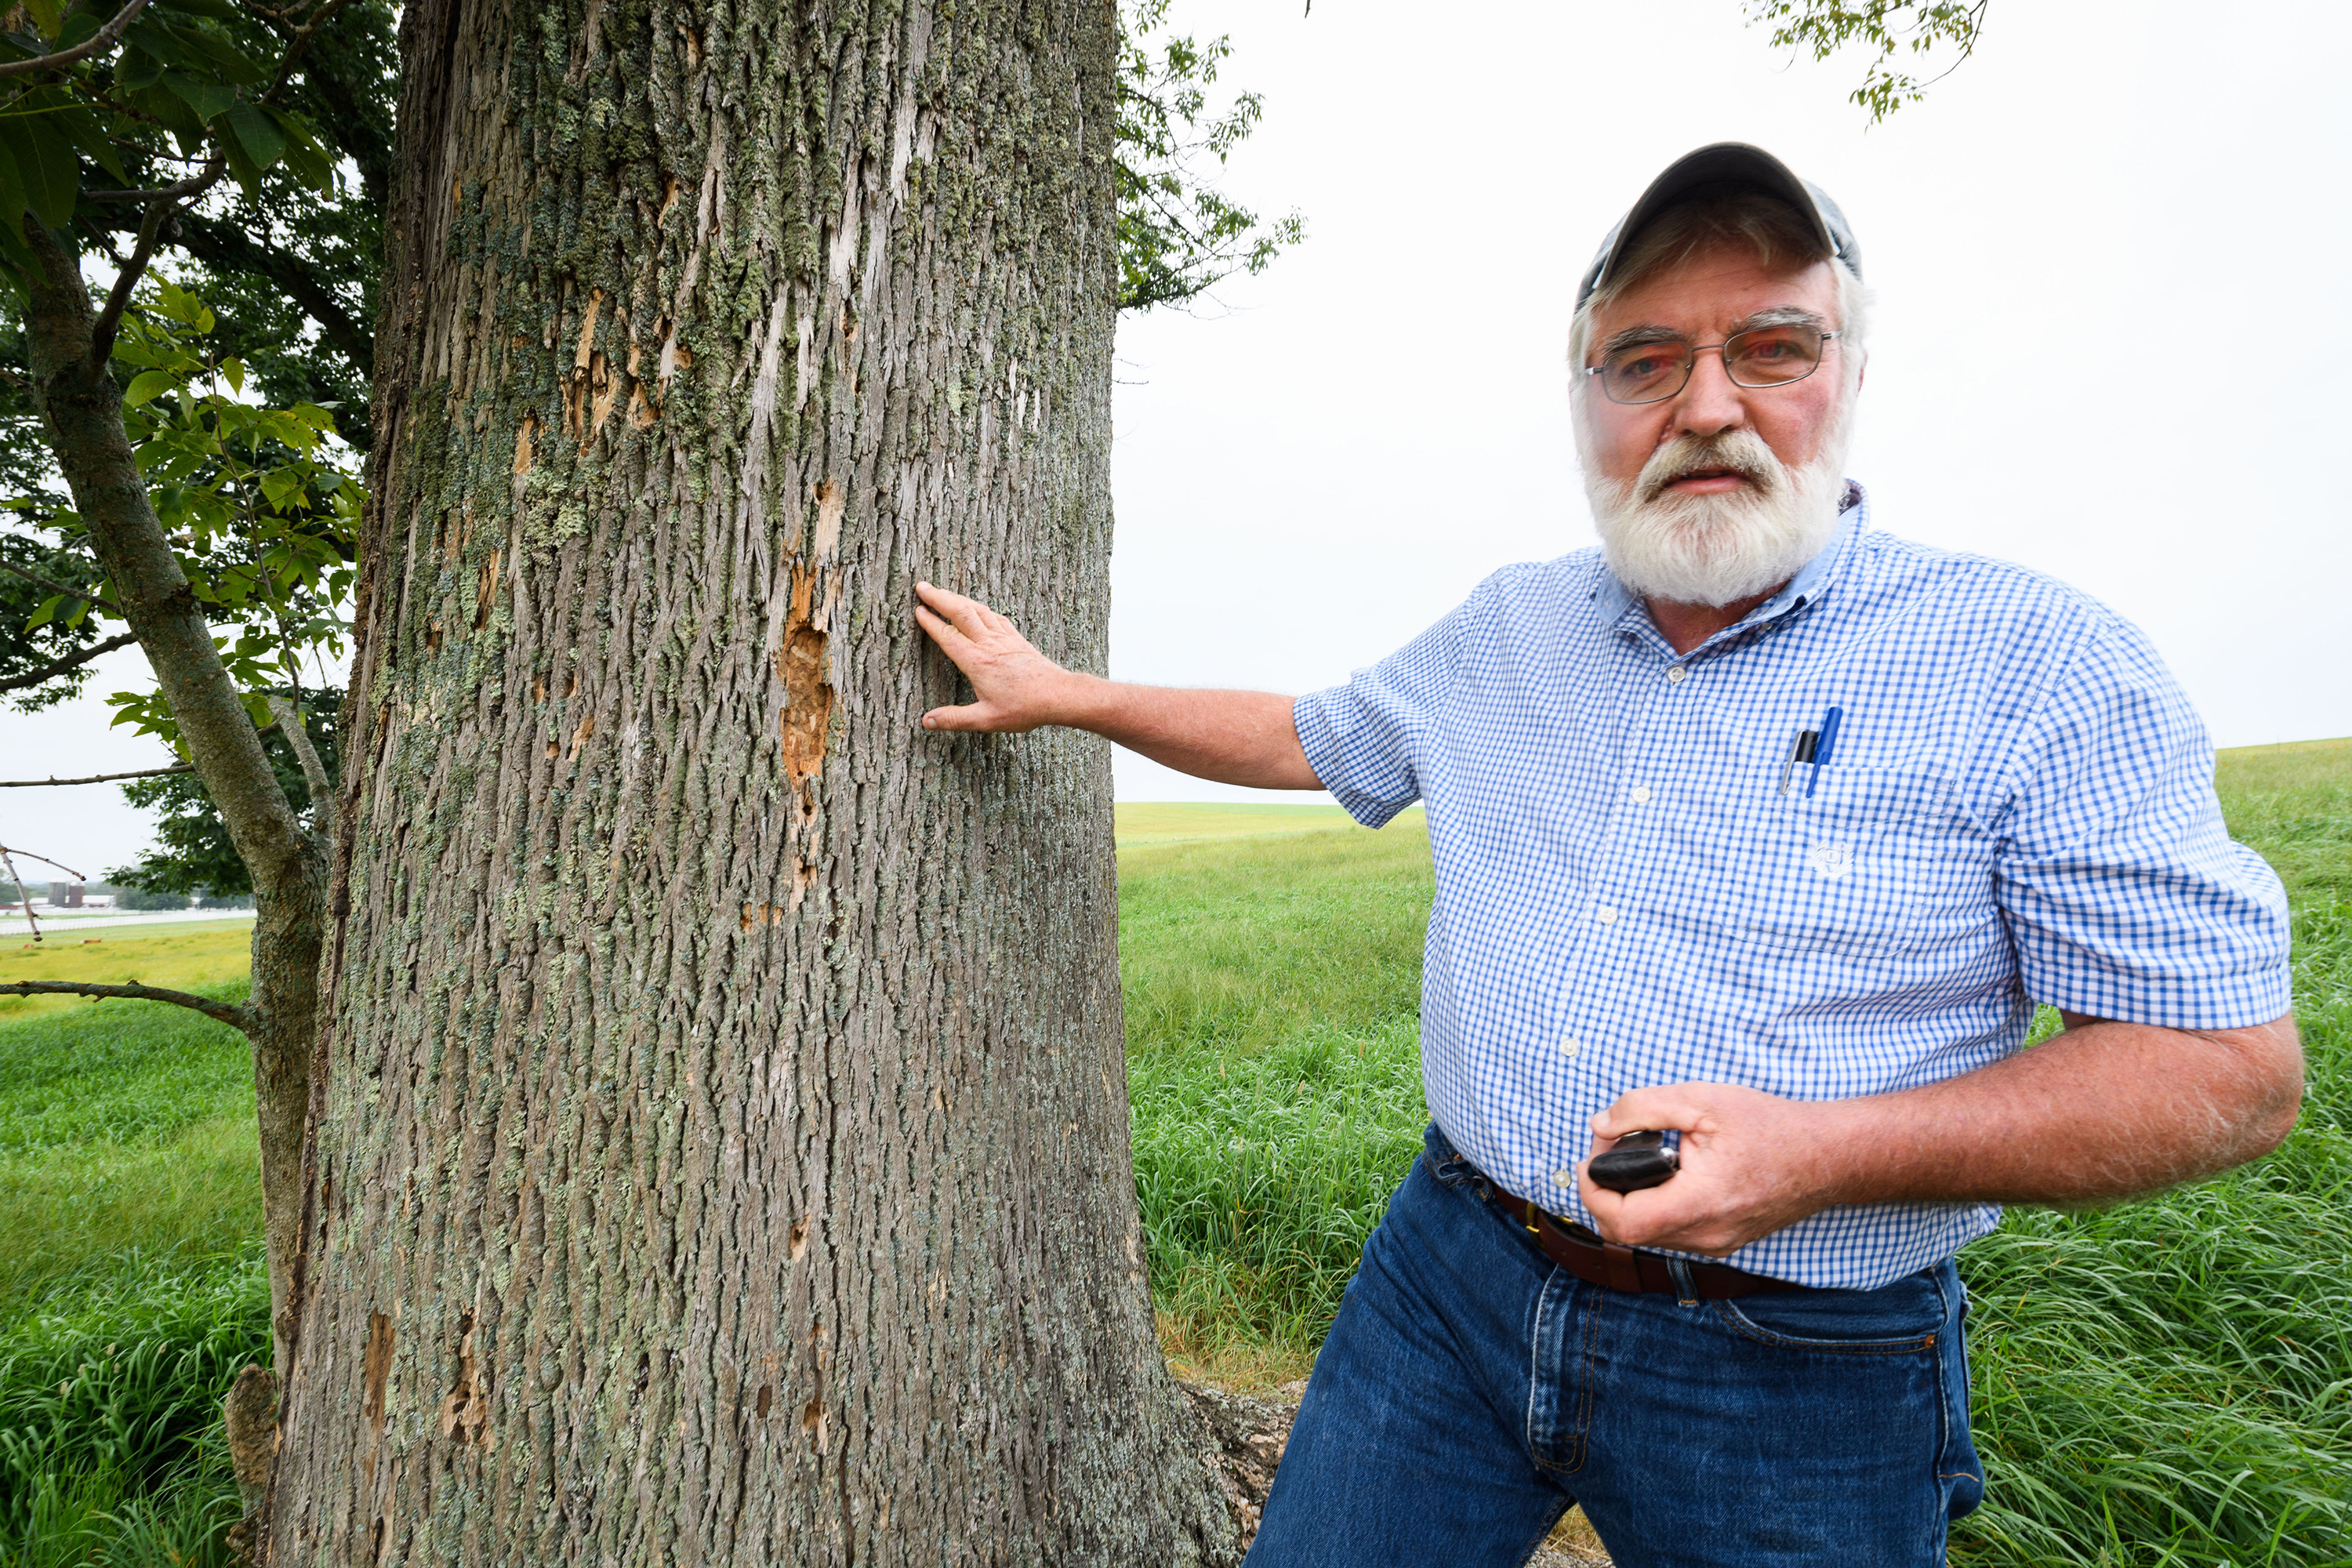 Thomas Worthley, associate extension professor, points out damage caused by emerald ash borers on a tree along Horsebarn Hill Road on Aug. 29, 2017. (Peter Morenus/UConn Photo)